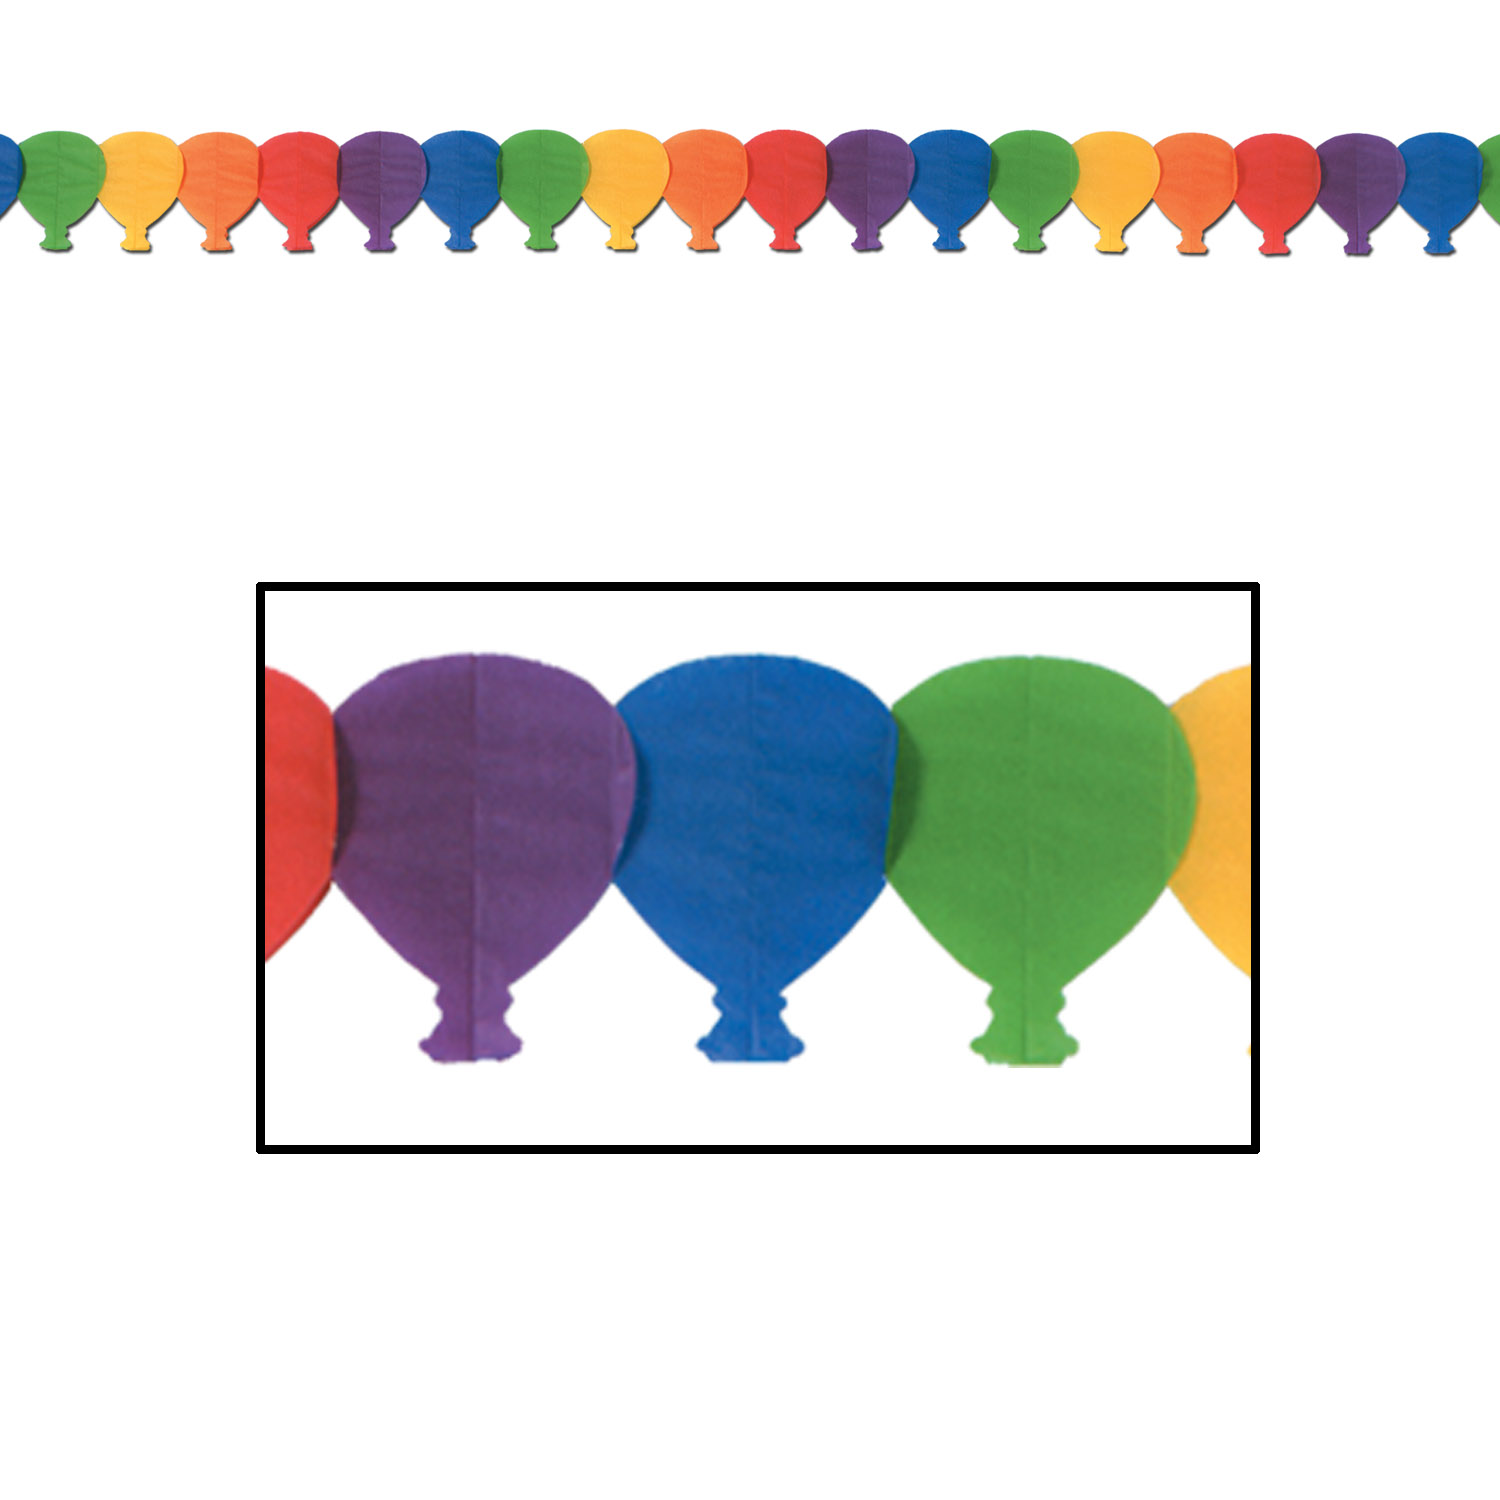 Balloon Garland (12 per pack) Garland, rainbow, tissue, balloons, happy birthday